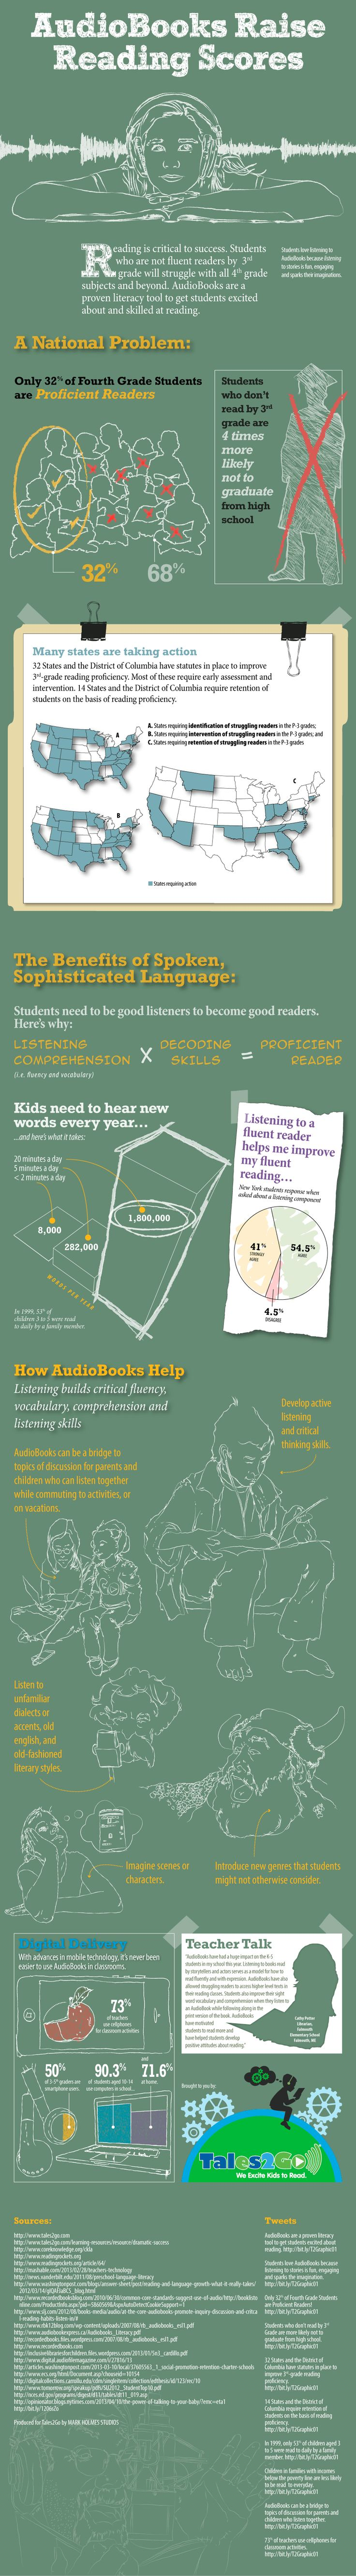 Do audio books raise reading scores? YES! {click to enlarge image} Interesting concept!